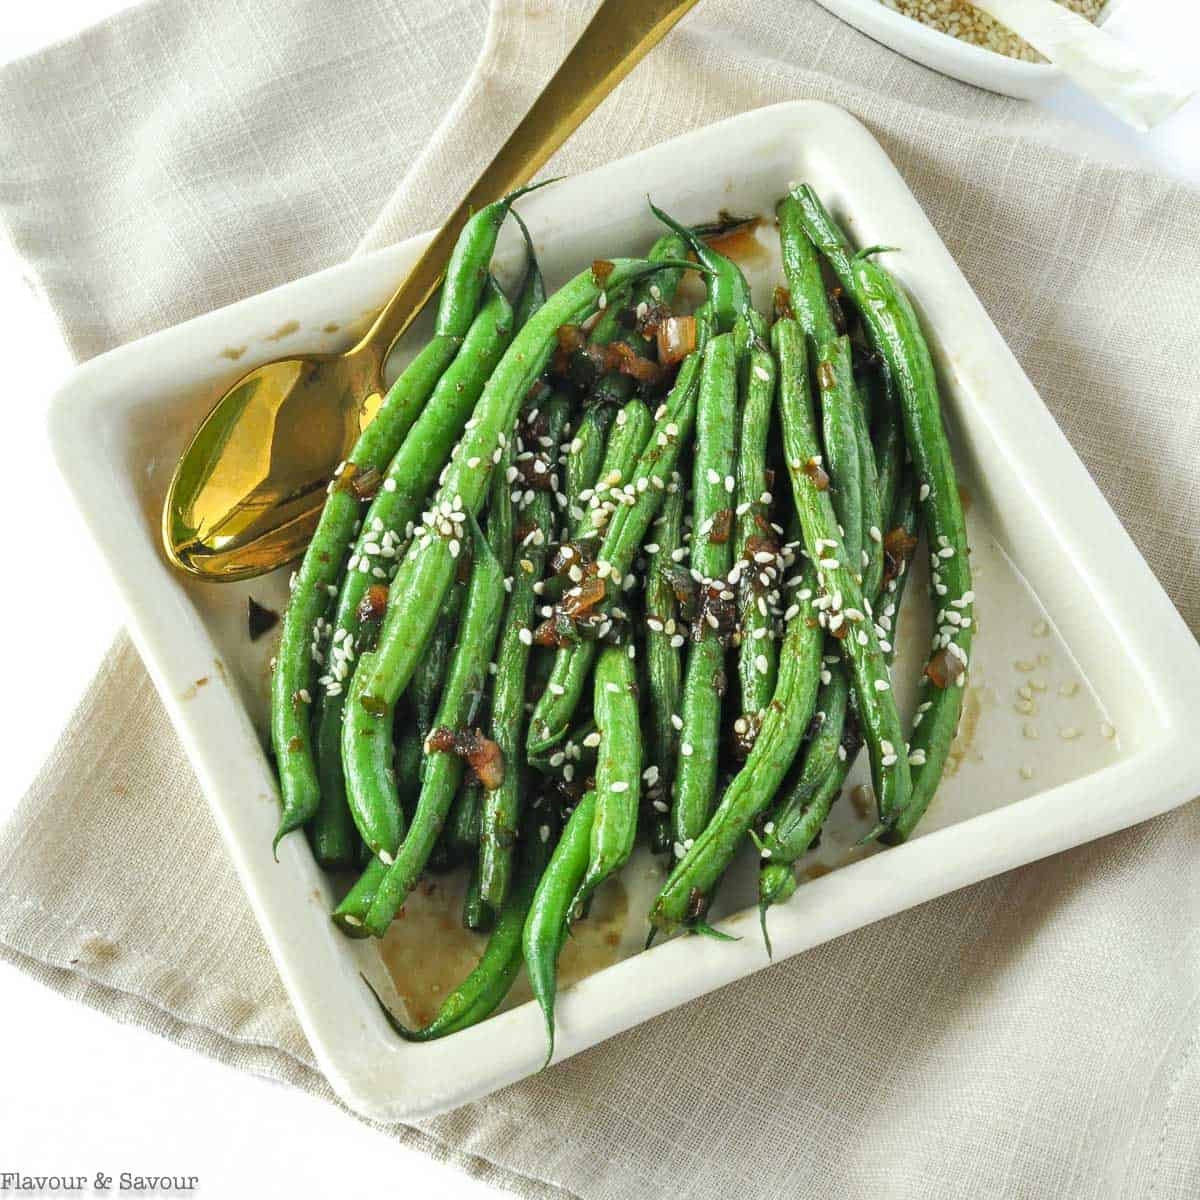 Sesame Ginger Green Beans in a square serving dish with a gold spoon